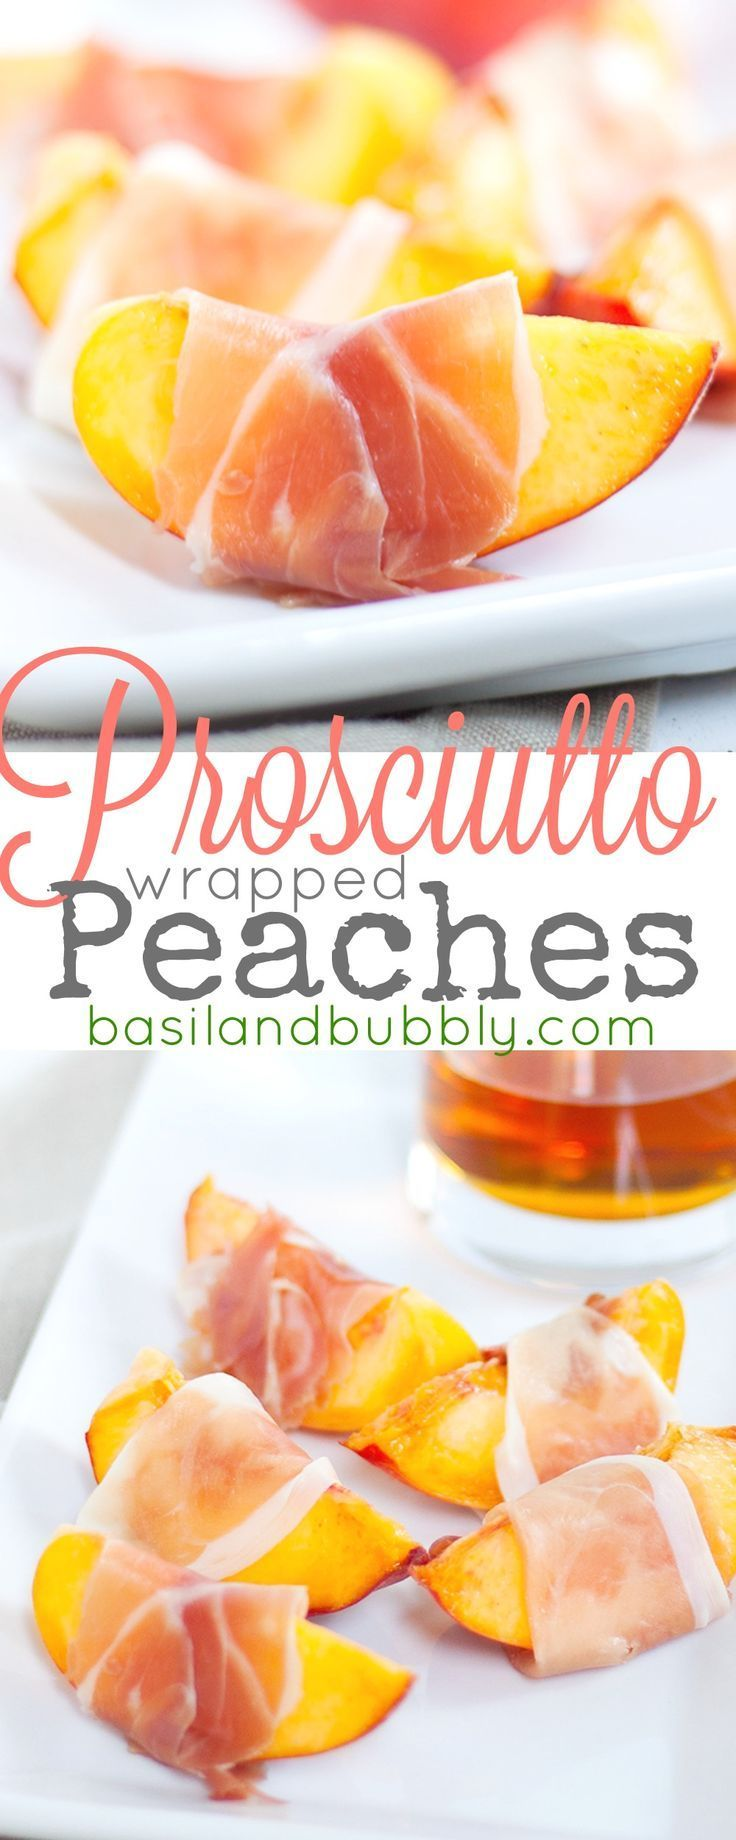 Prosciutto Wred Peaches Easy Summer Etizersparty